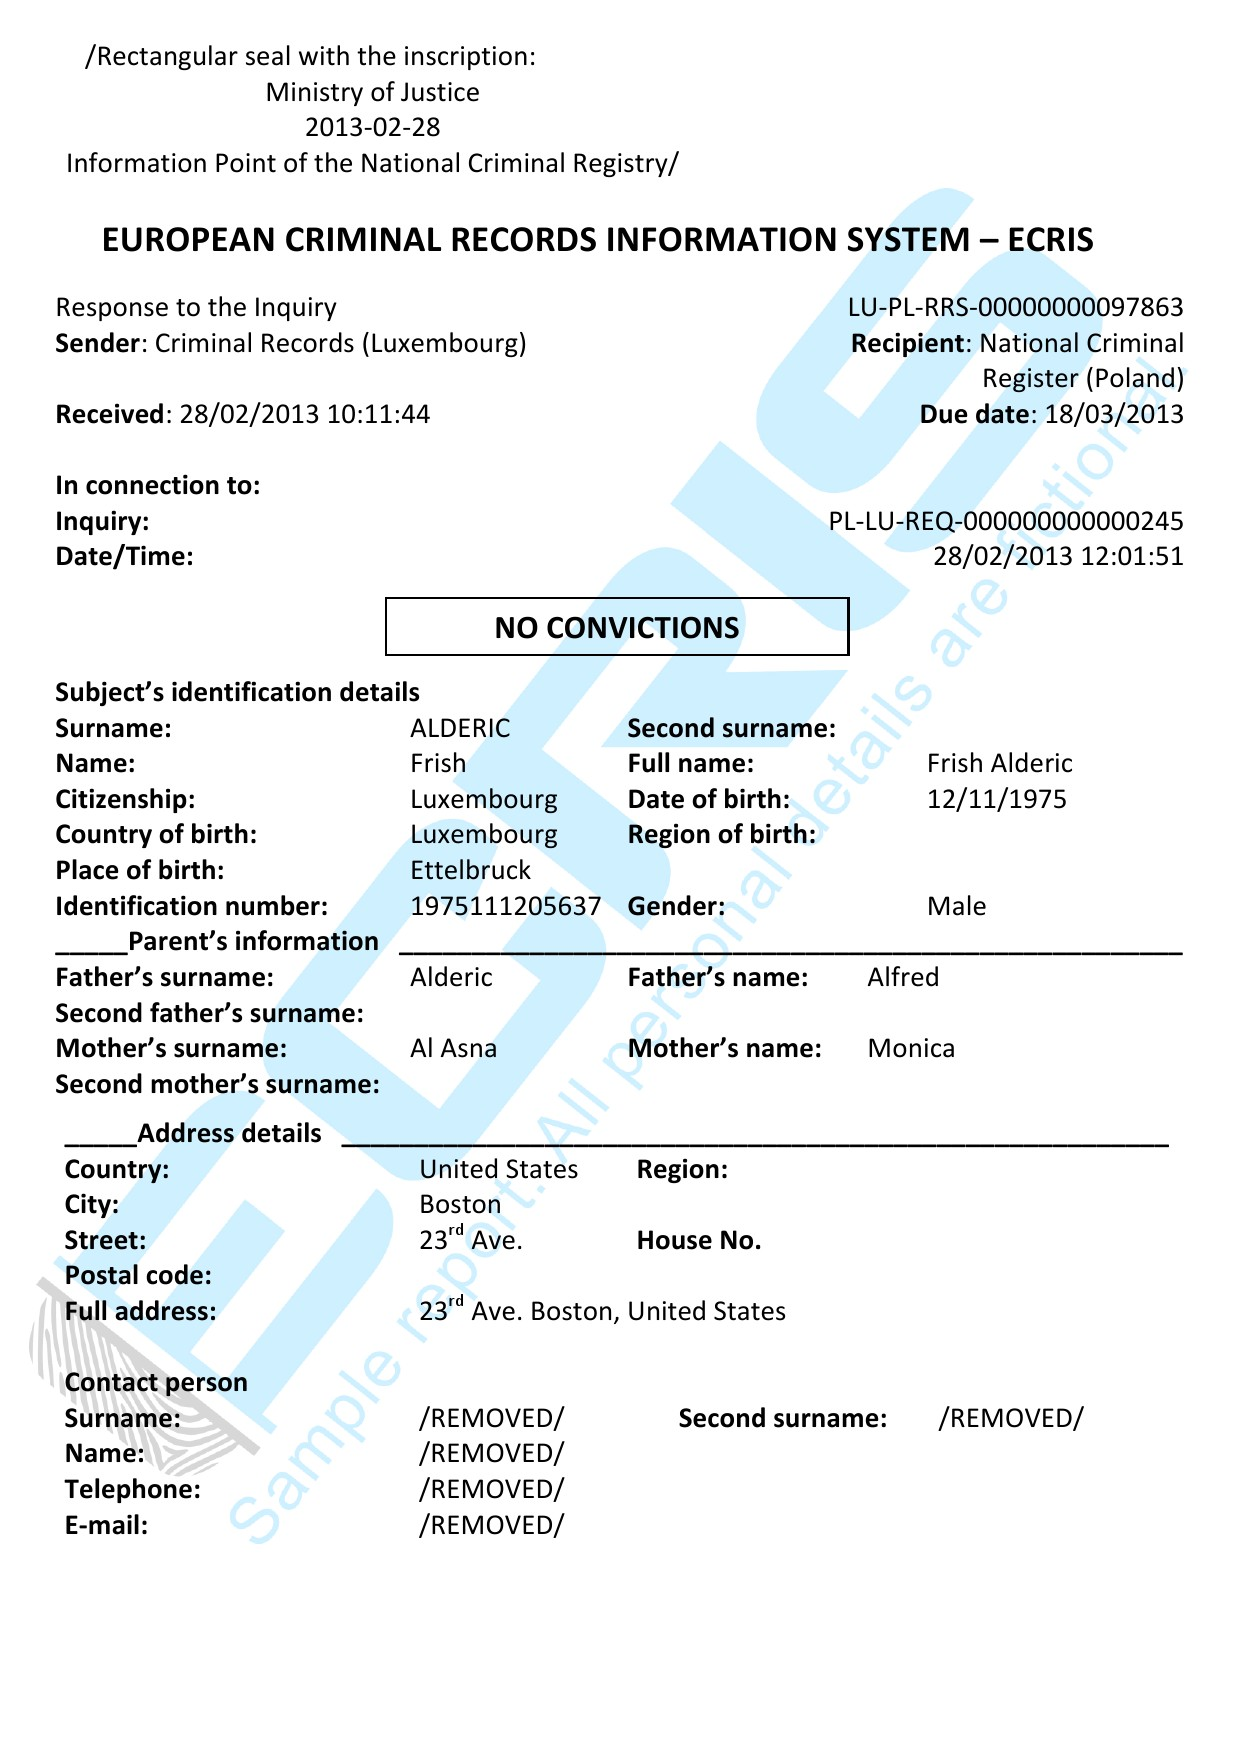 luxembourg criminal record check from palace of justice